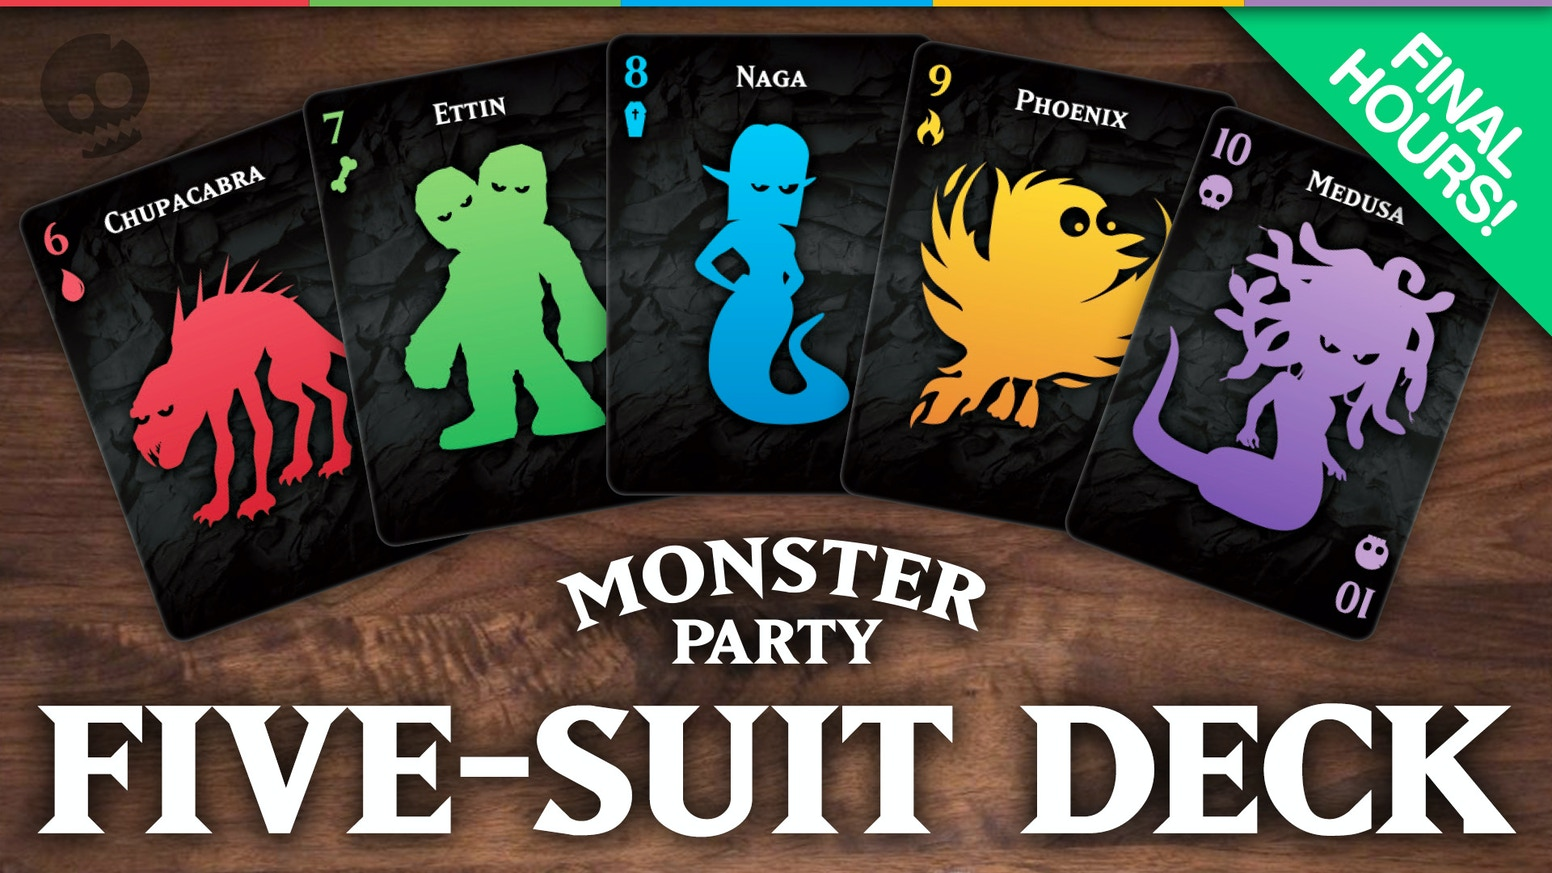 Monster Party is a custom five-suit deck of playing cards featuring 50 fun original monster illustrations.